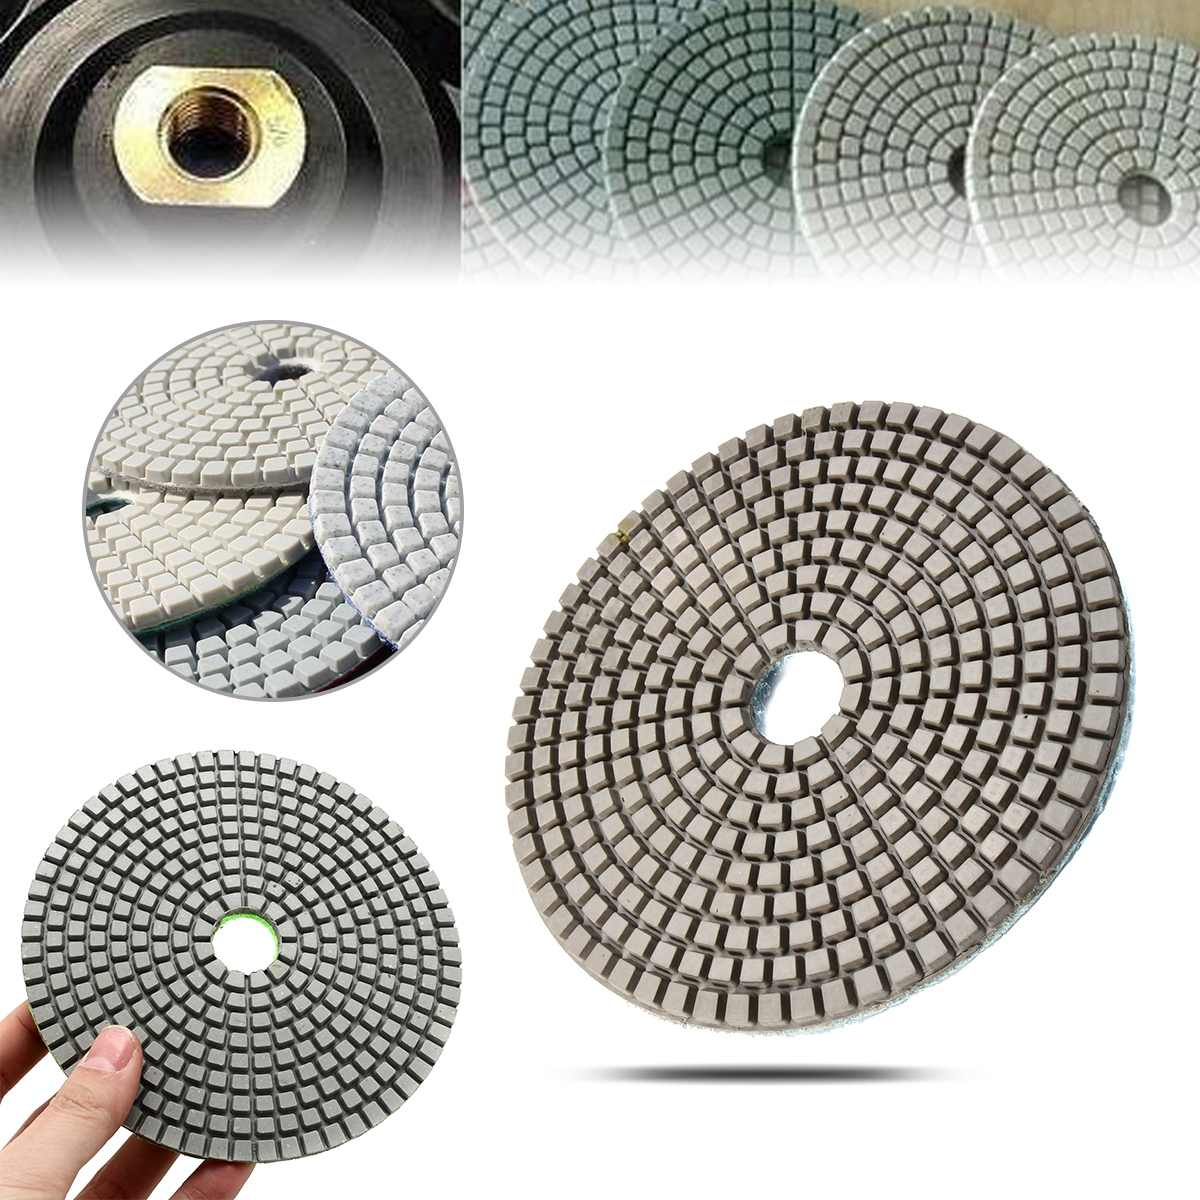 5 Inch Diamond Polishing Pads Grit 50-6000 Grits Wet / Dry Sanding Disc For Marble Concrete Granite Glass New 1 Pcs Power Tools